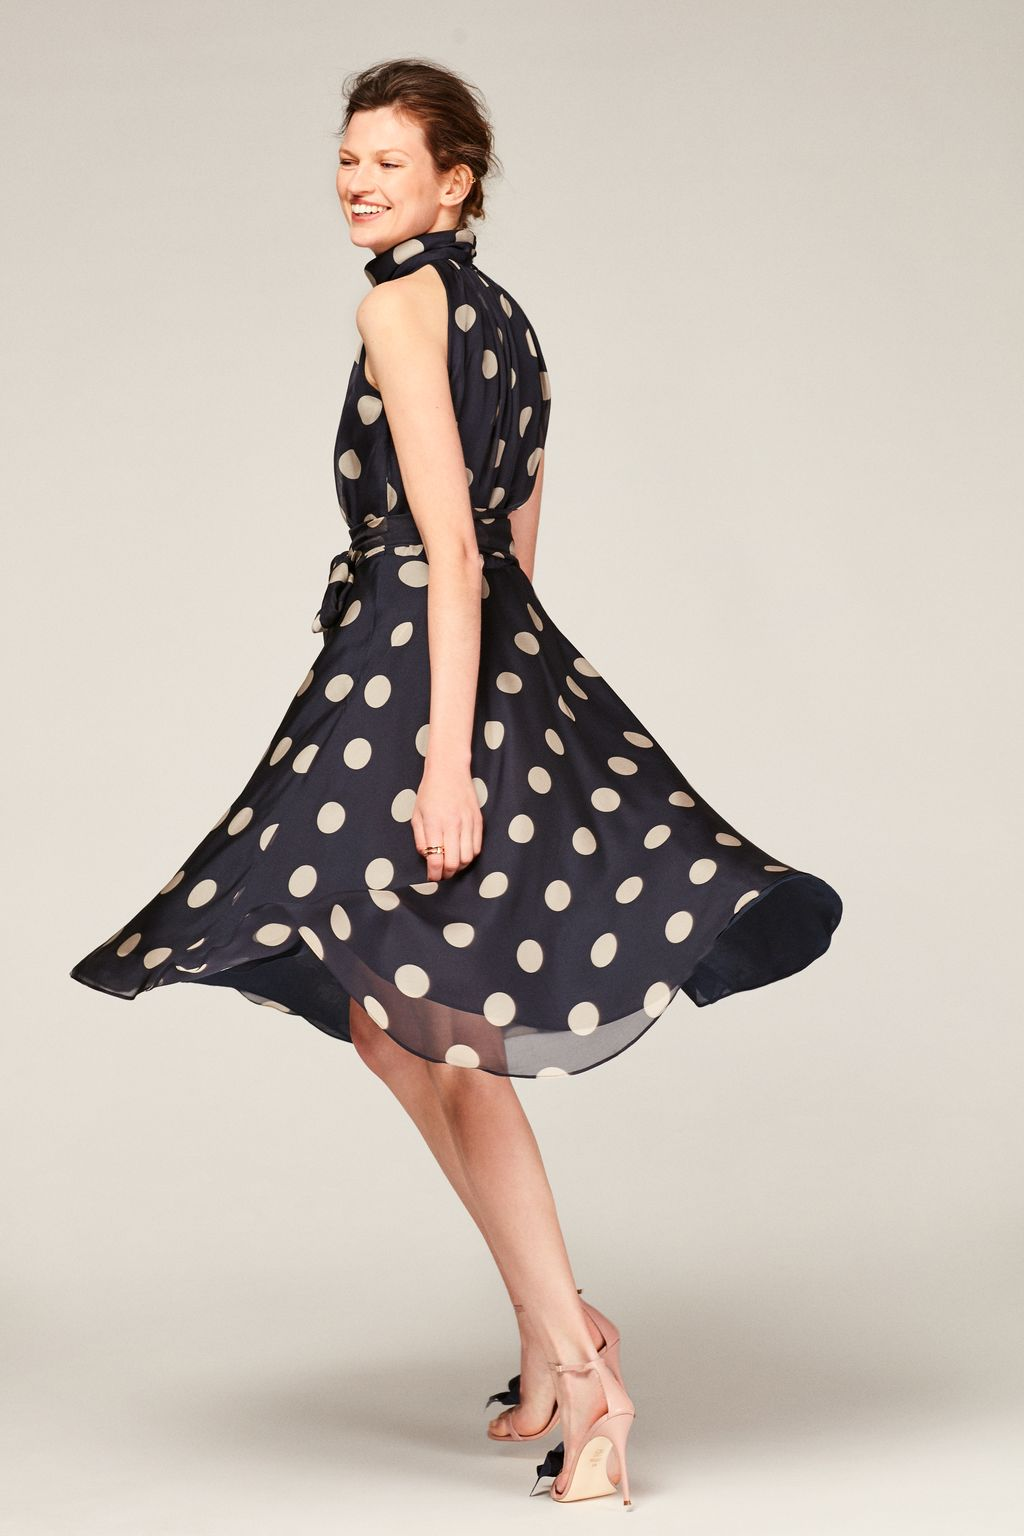 Polka dot silk dress